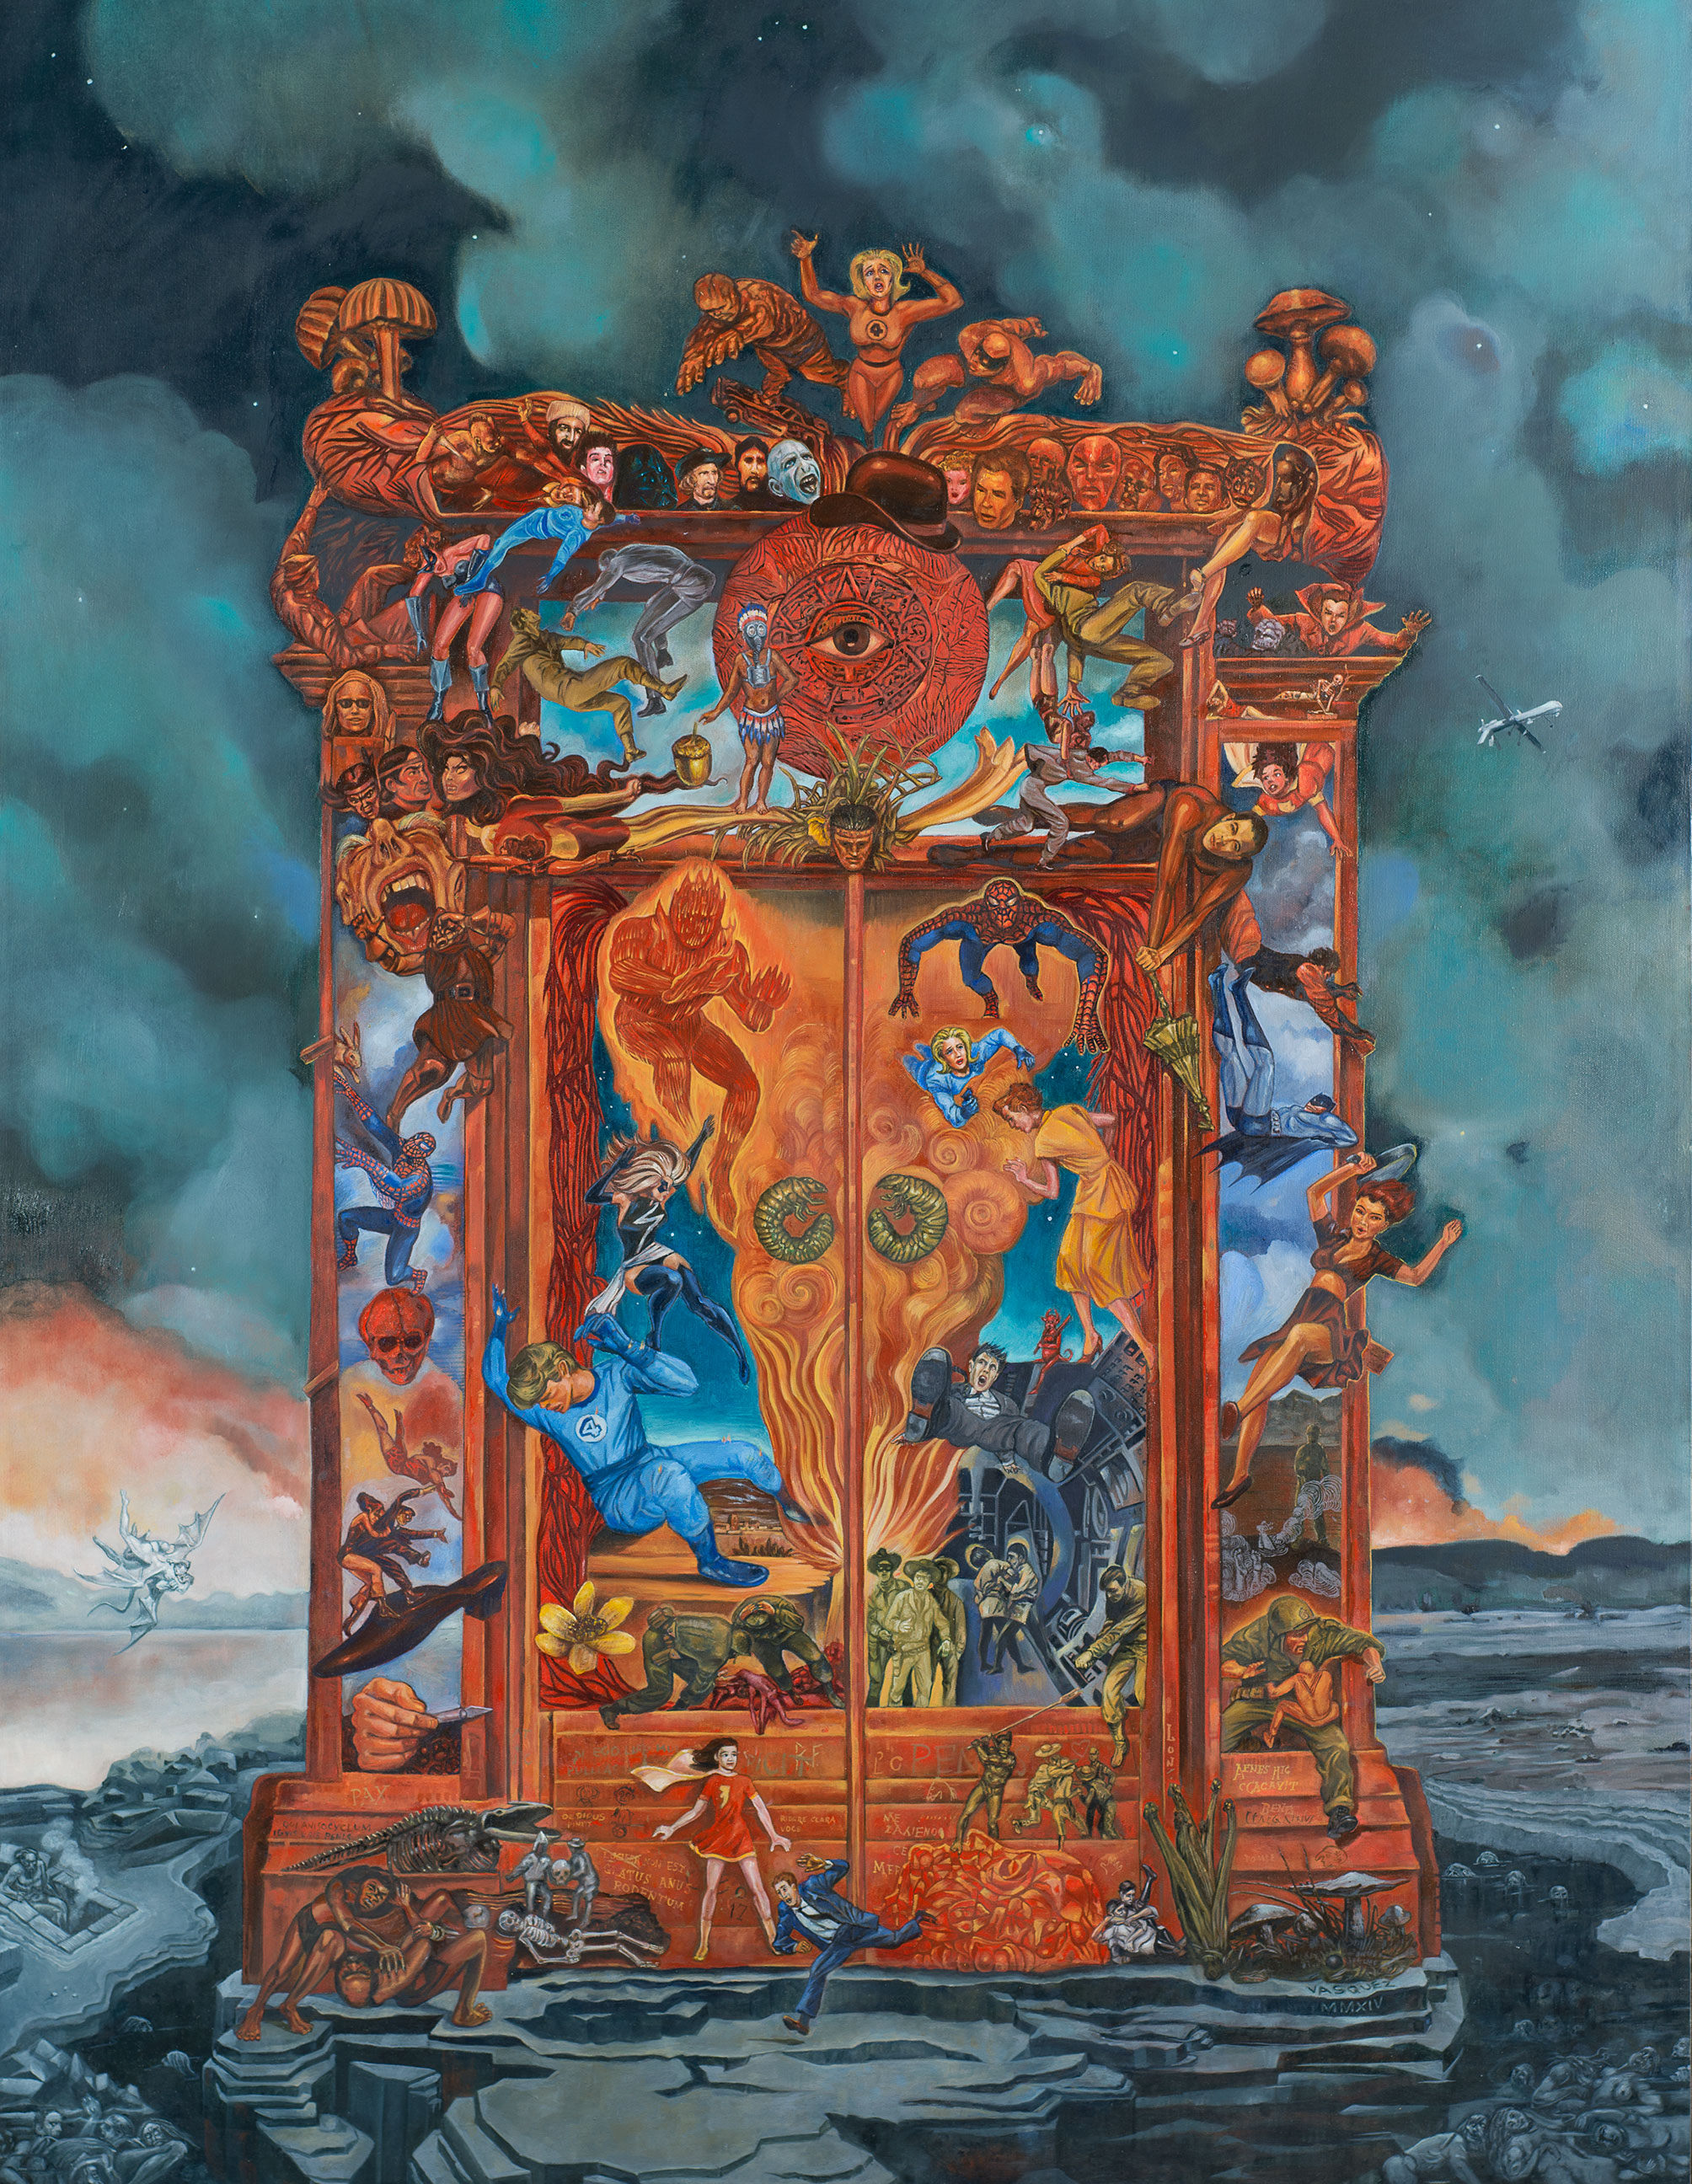 "Title: Gates of Heck  Dimensions: 43"" x 50""  Medium: Oil on canvas  Date: 2014  Notes: Rodin's sculpture, Porte de l'Enfer, serves as a conceptual and structural framework for this painting. The original mythical and literary figures of Dante's Inferno that Rodin brought to life are updated and replaced with characters from the universe of comic book super heroes. Porte de l'Enfer has haunted me since I was a student and saw it for the first time in front of the Stanford Art Museum. Gates of Heck is my homage to this great masterpiece."